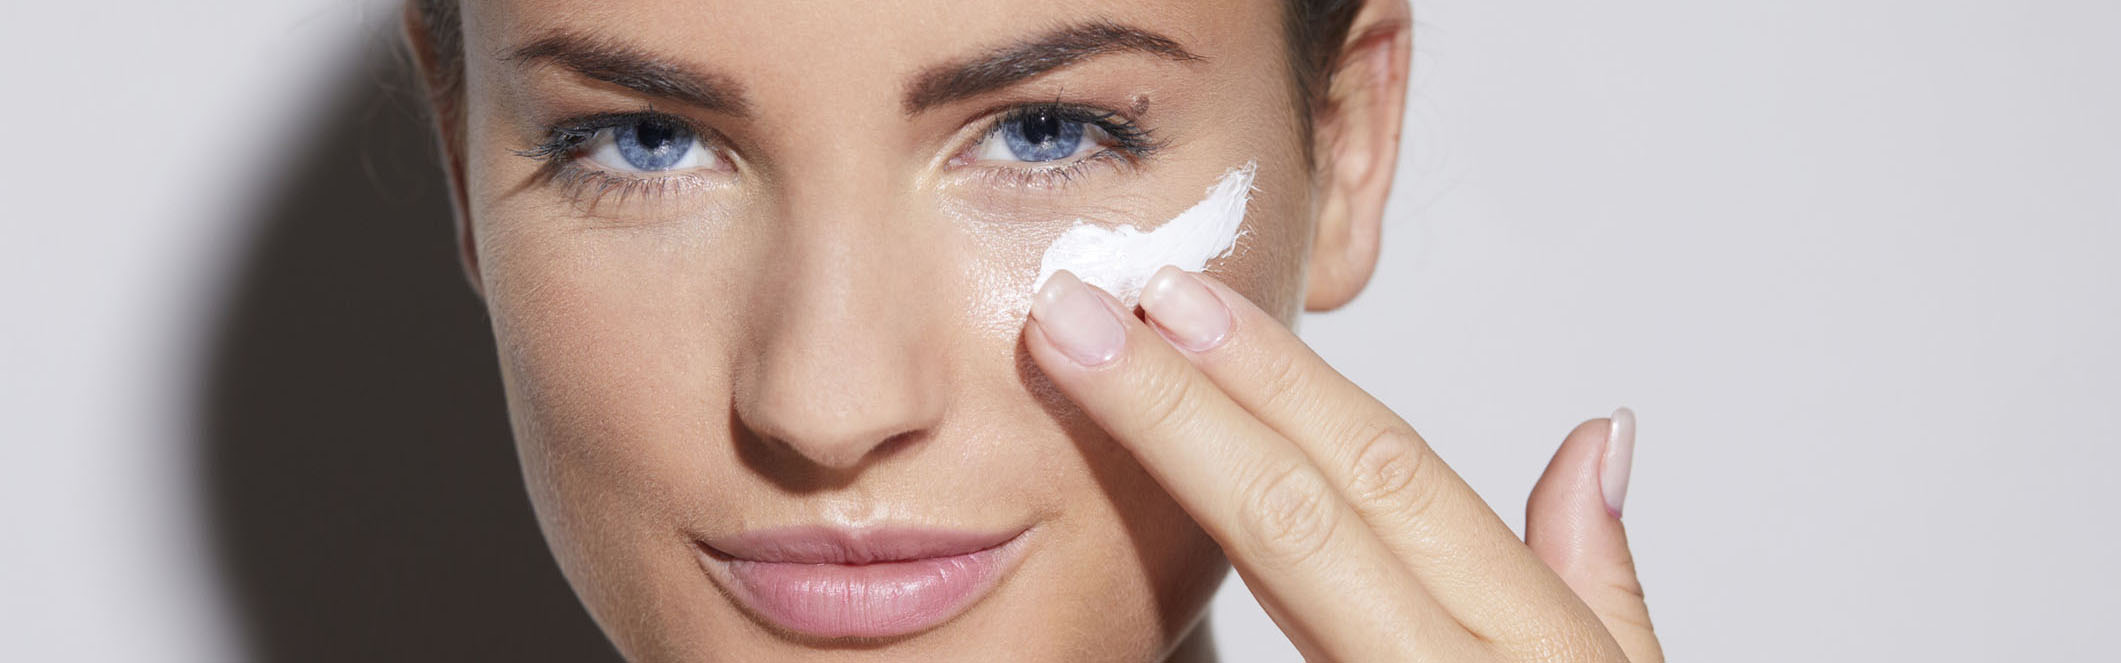 Best Eye Creams For Tired and Puffy Eyes